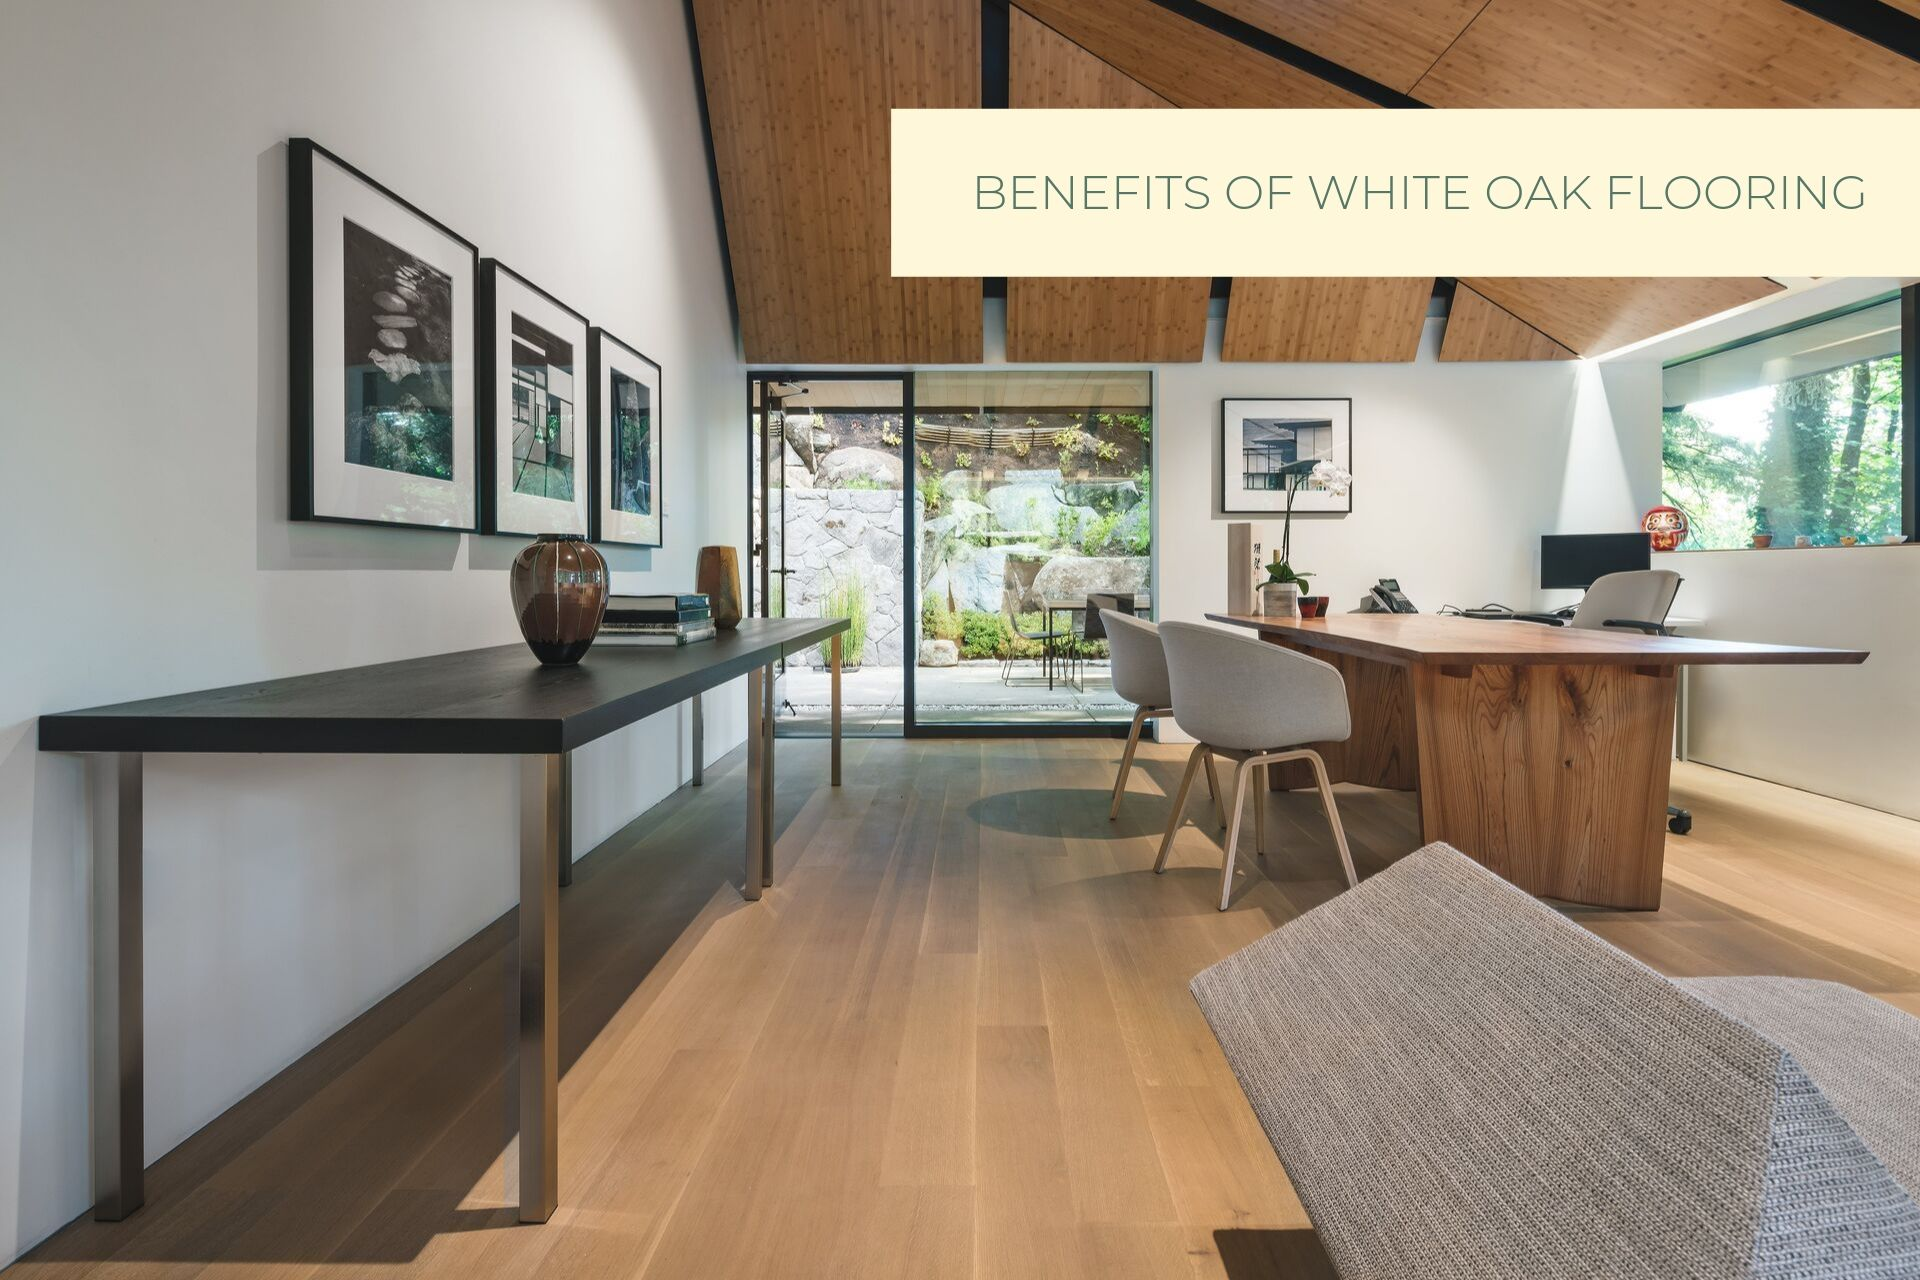 Castle Bespoke_ Benefits of White Oak Flooring